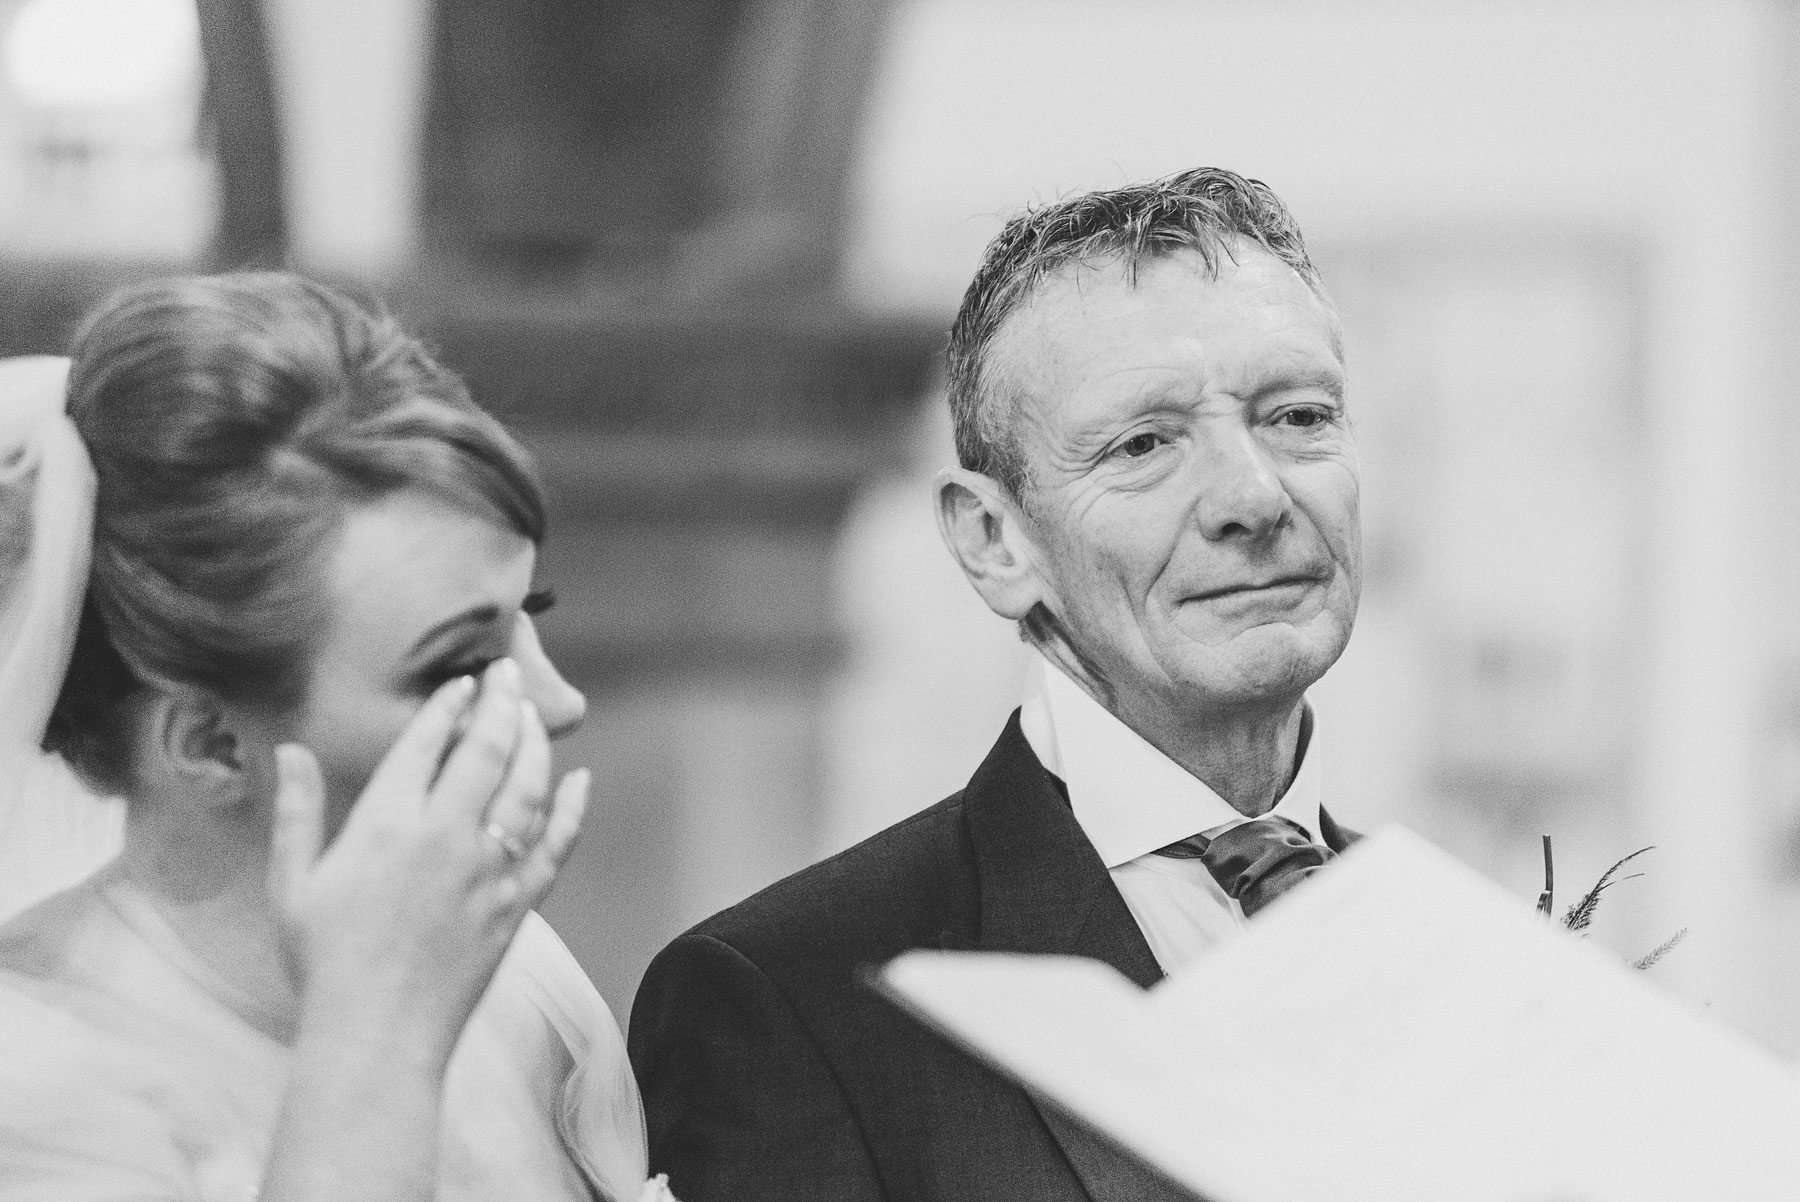 Bride gets emotional while her farther looks on proud